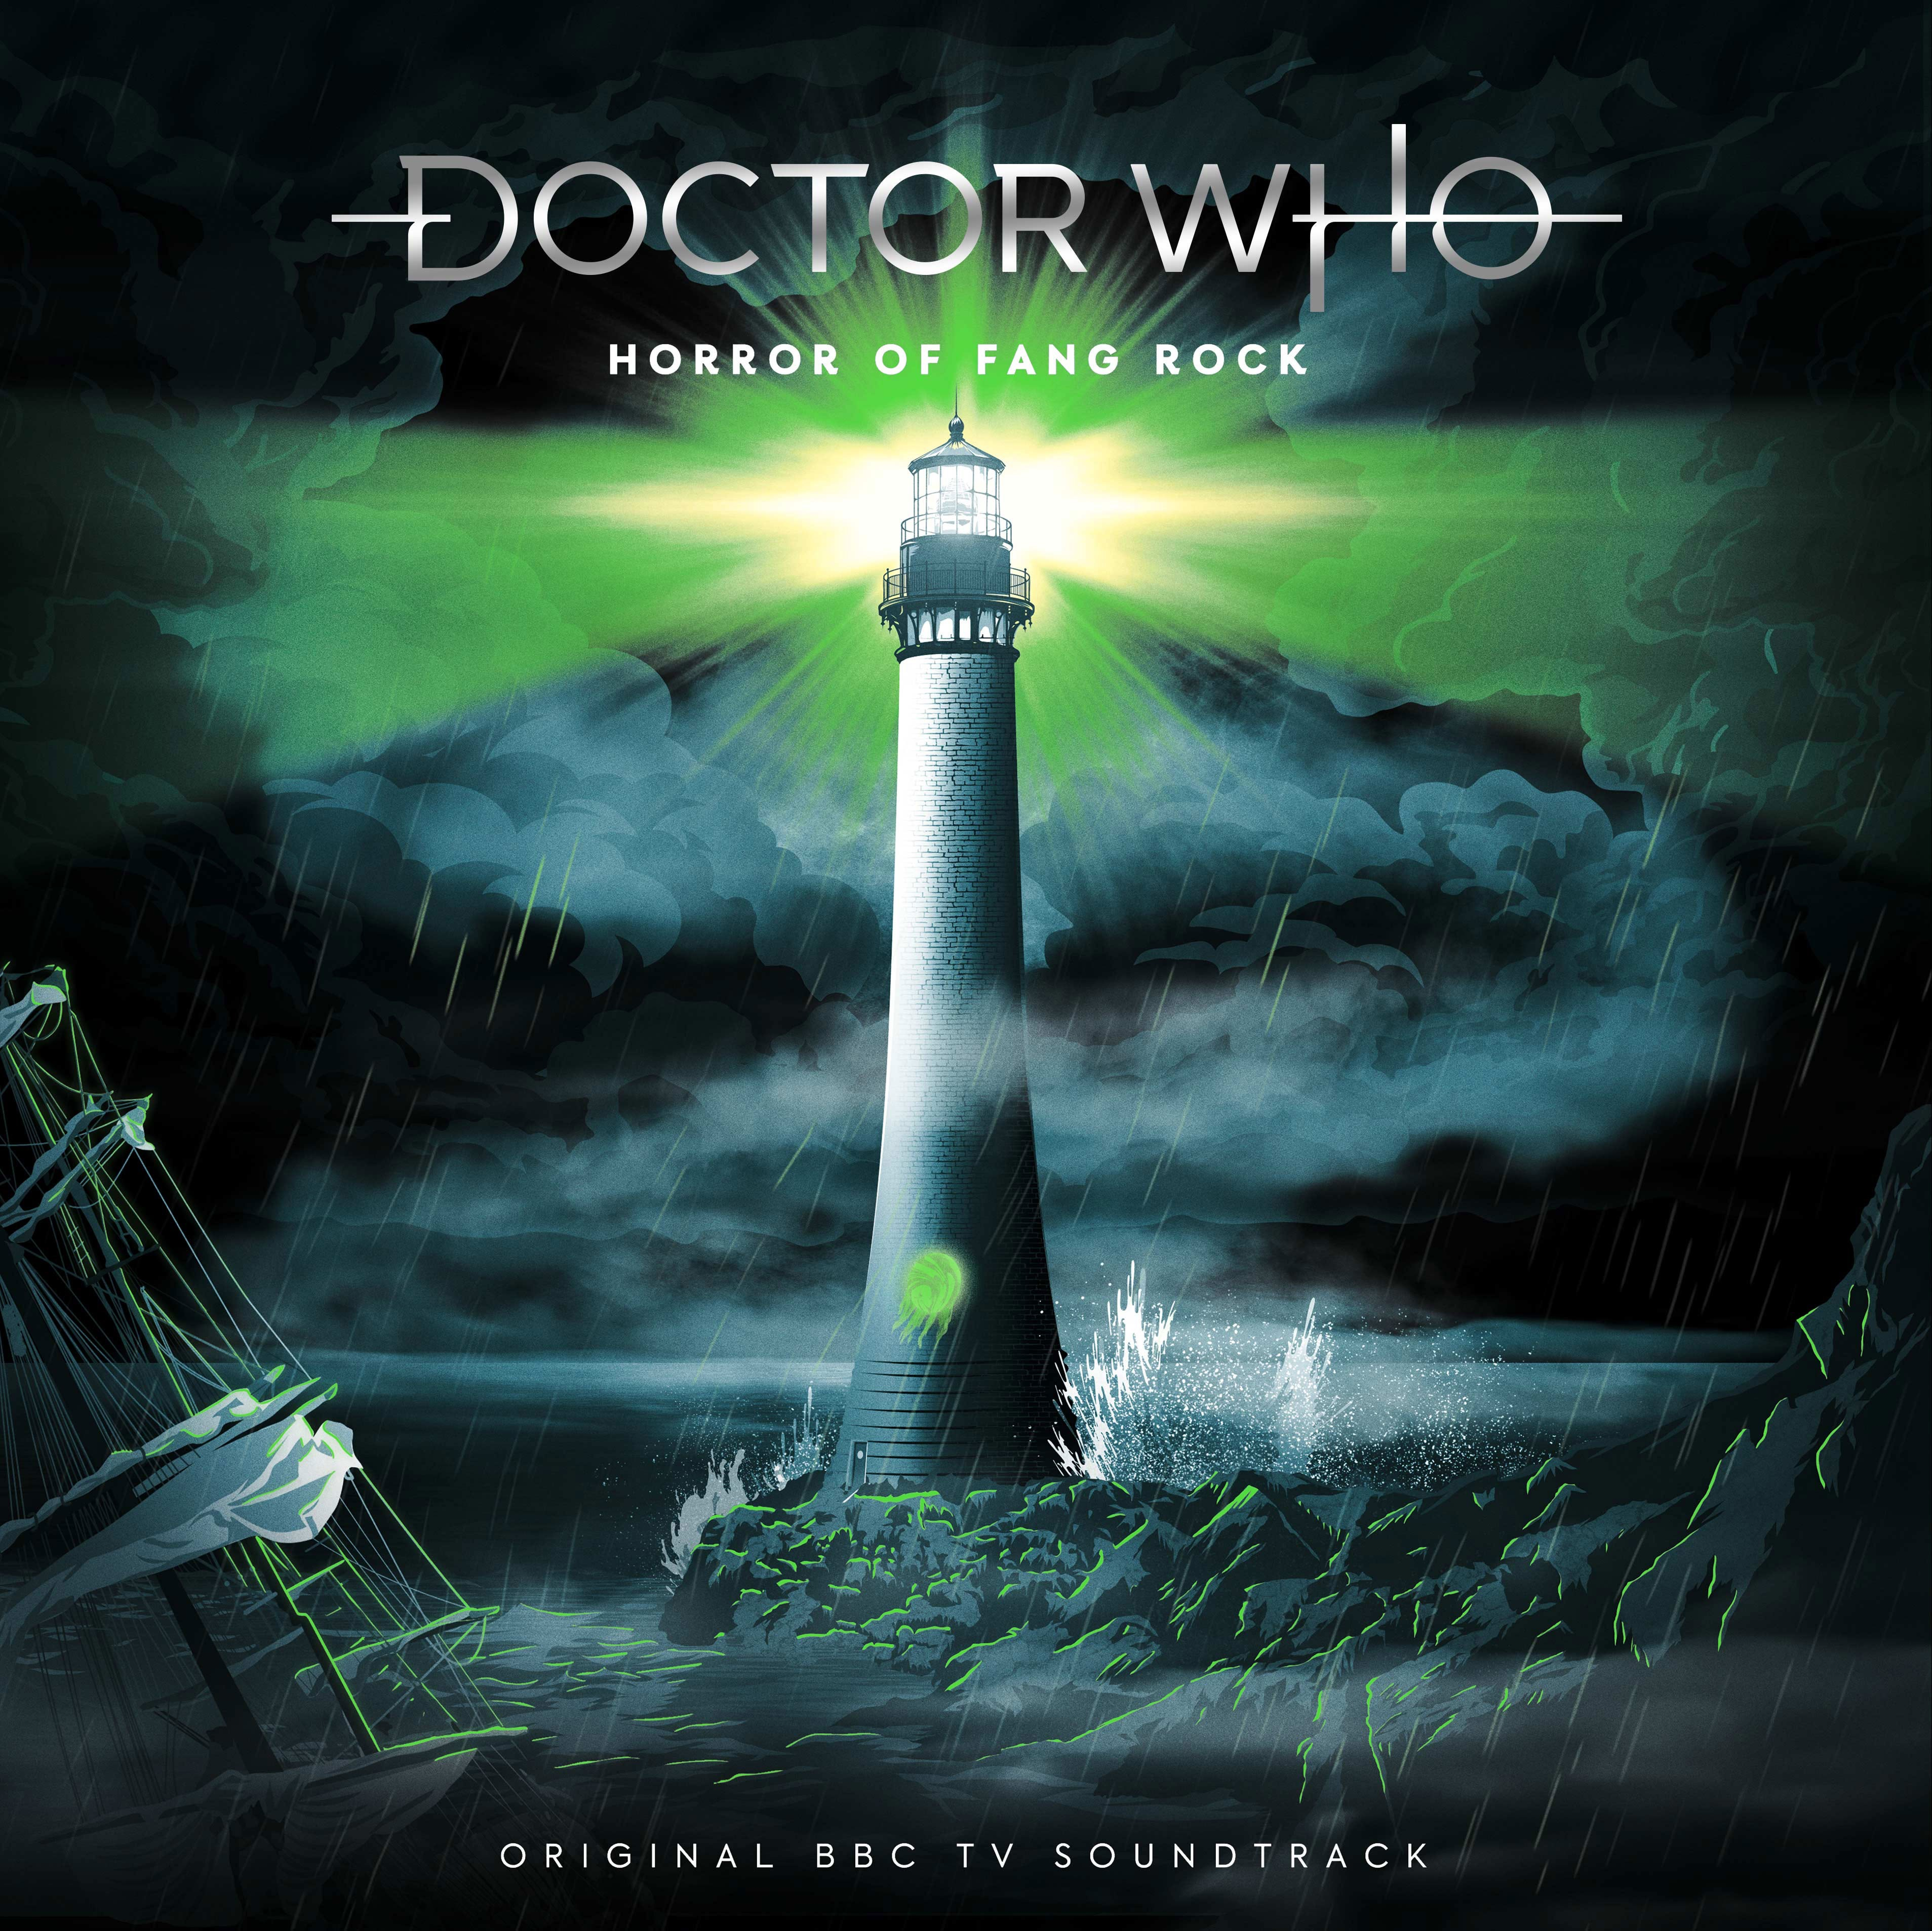 Doctor Who Horror of Fang Rock vinyl version